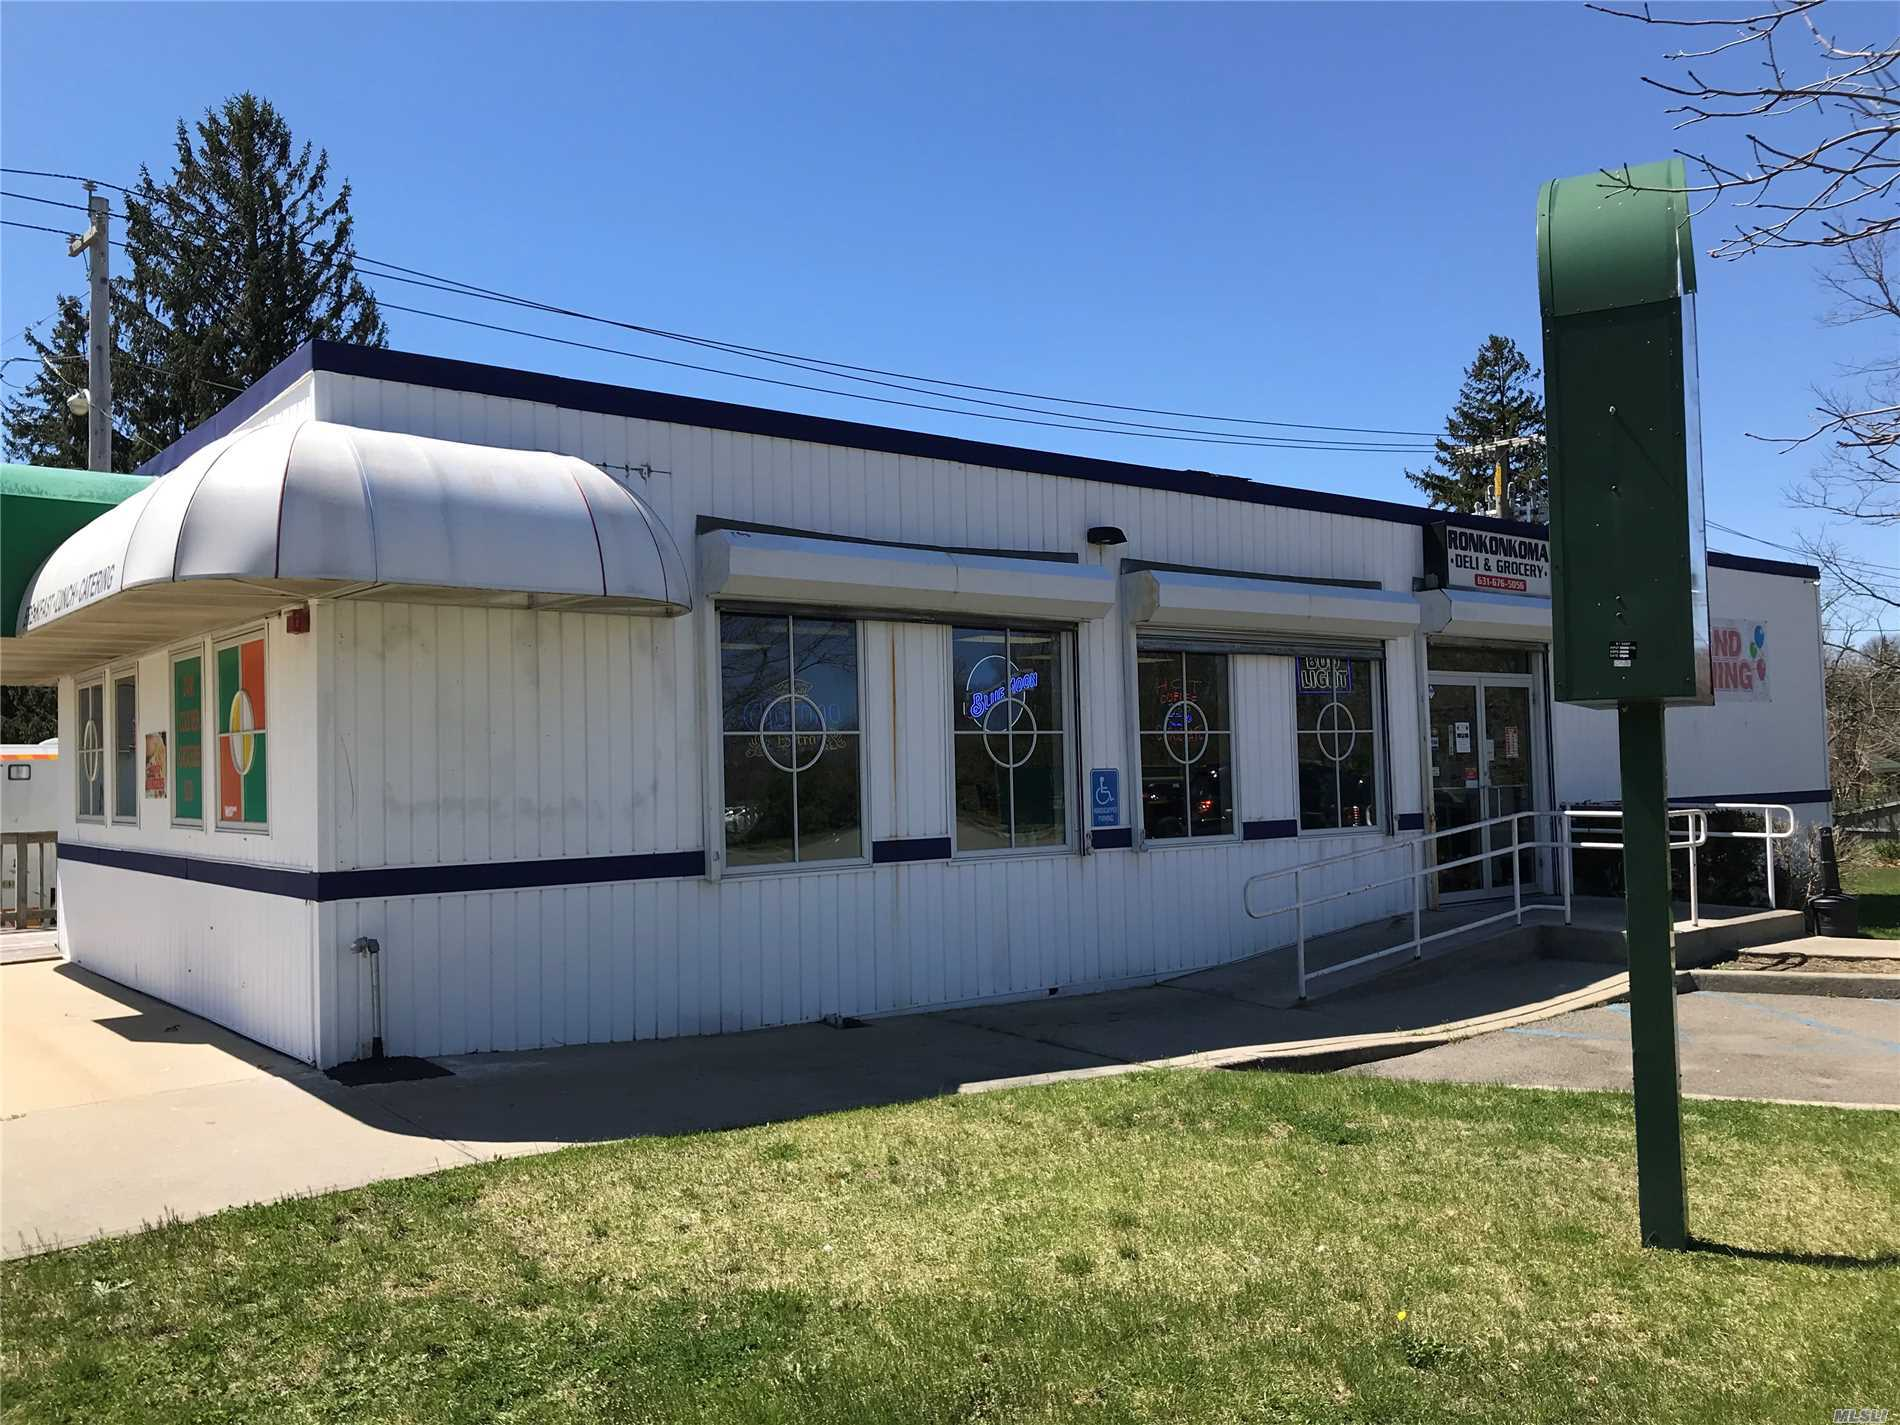 Great opportunity close to Ronkonkoma Hub and LIRR Station. High visibility corner location for this 1440 square foot commercial building with full basement and parking lot. Currently a Delicatessen, the building is for sale and does not include the business or the fixtures.